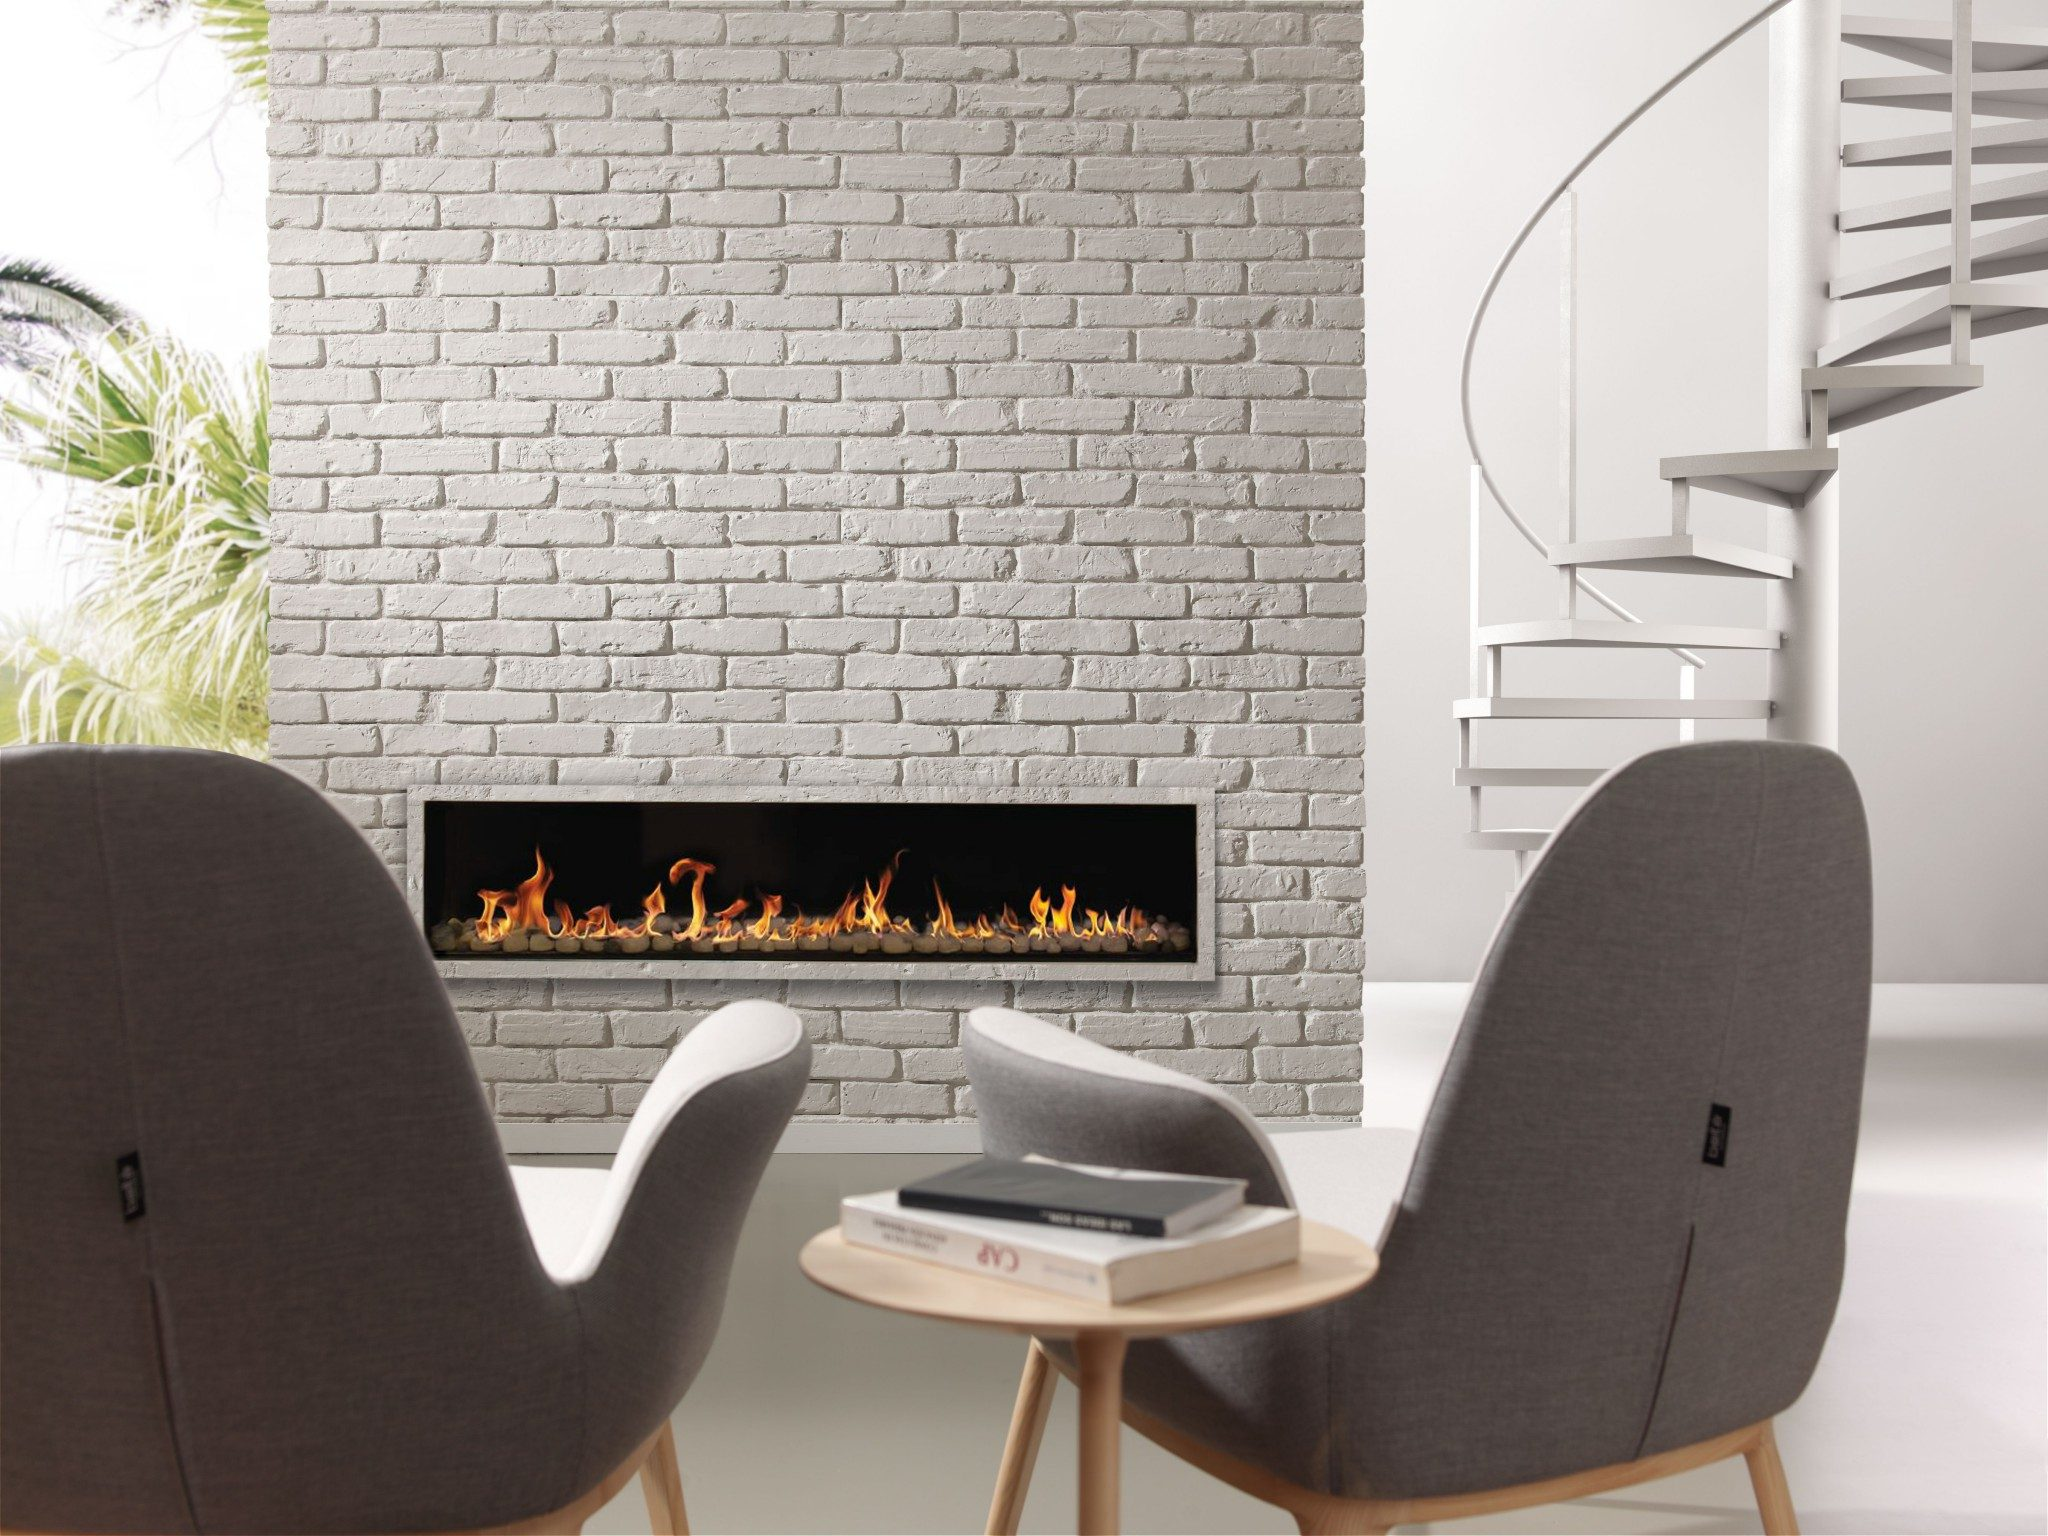 Vidaspace hw0100 trikbrik white brick cladding composite - Interior wall sheeting materials ...